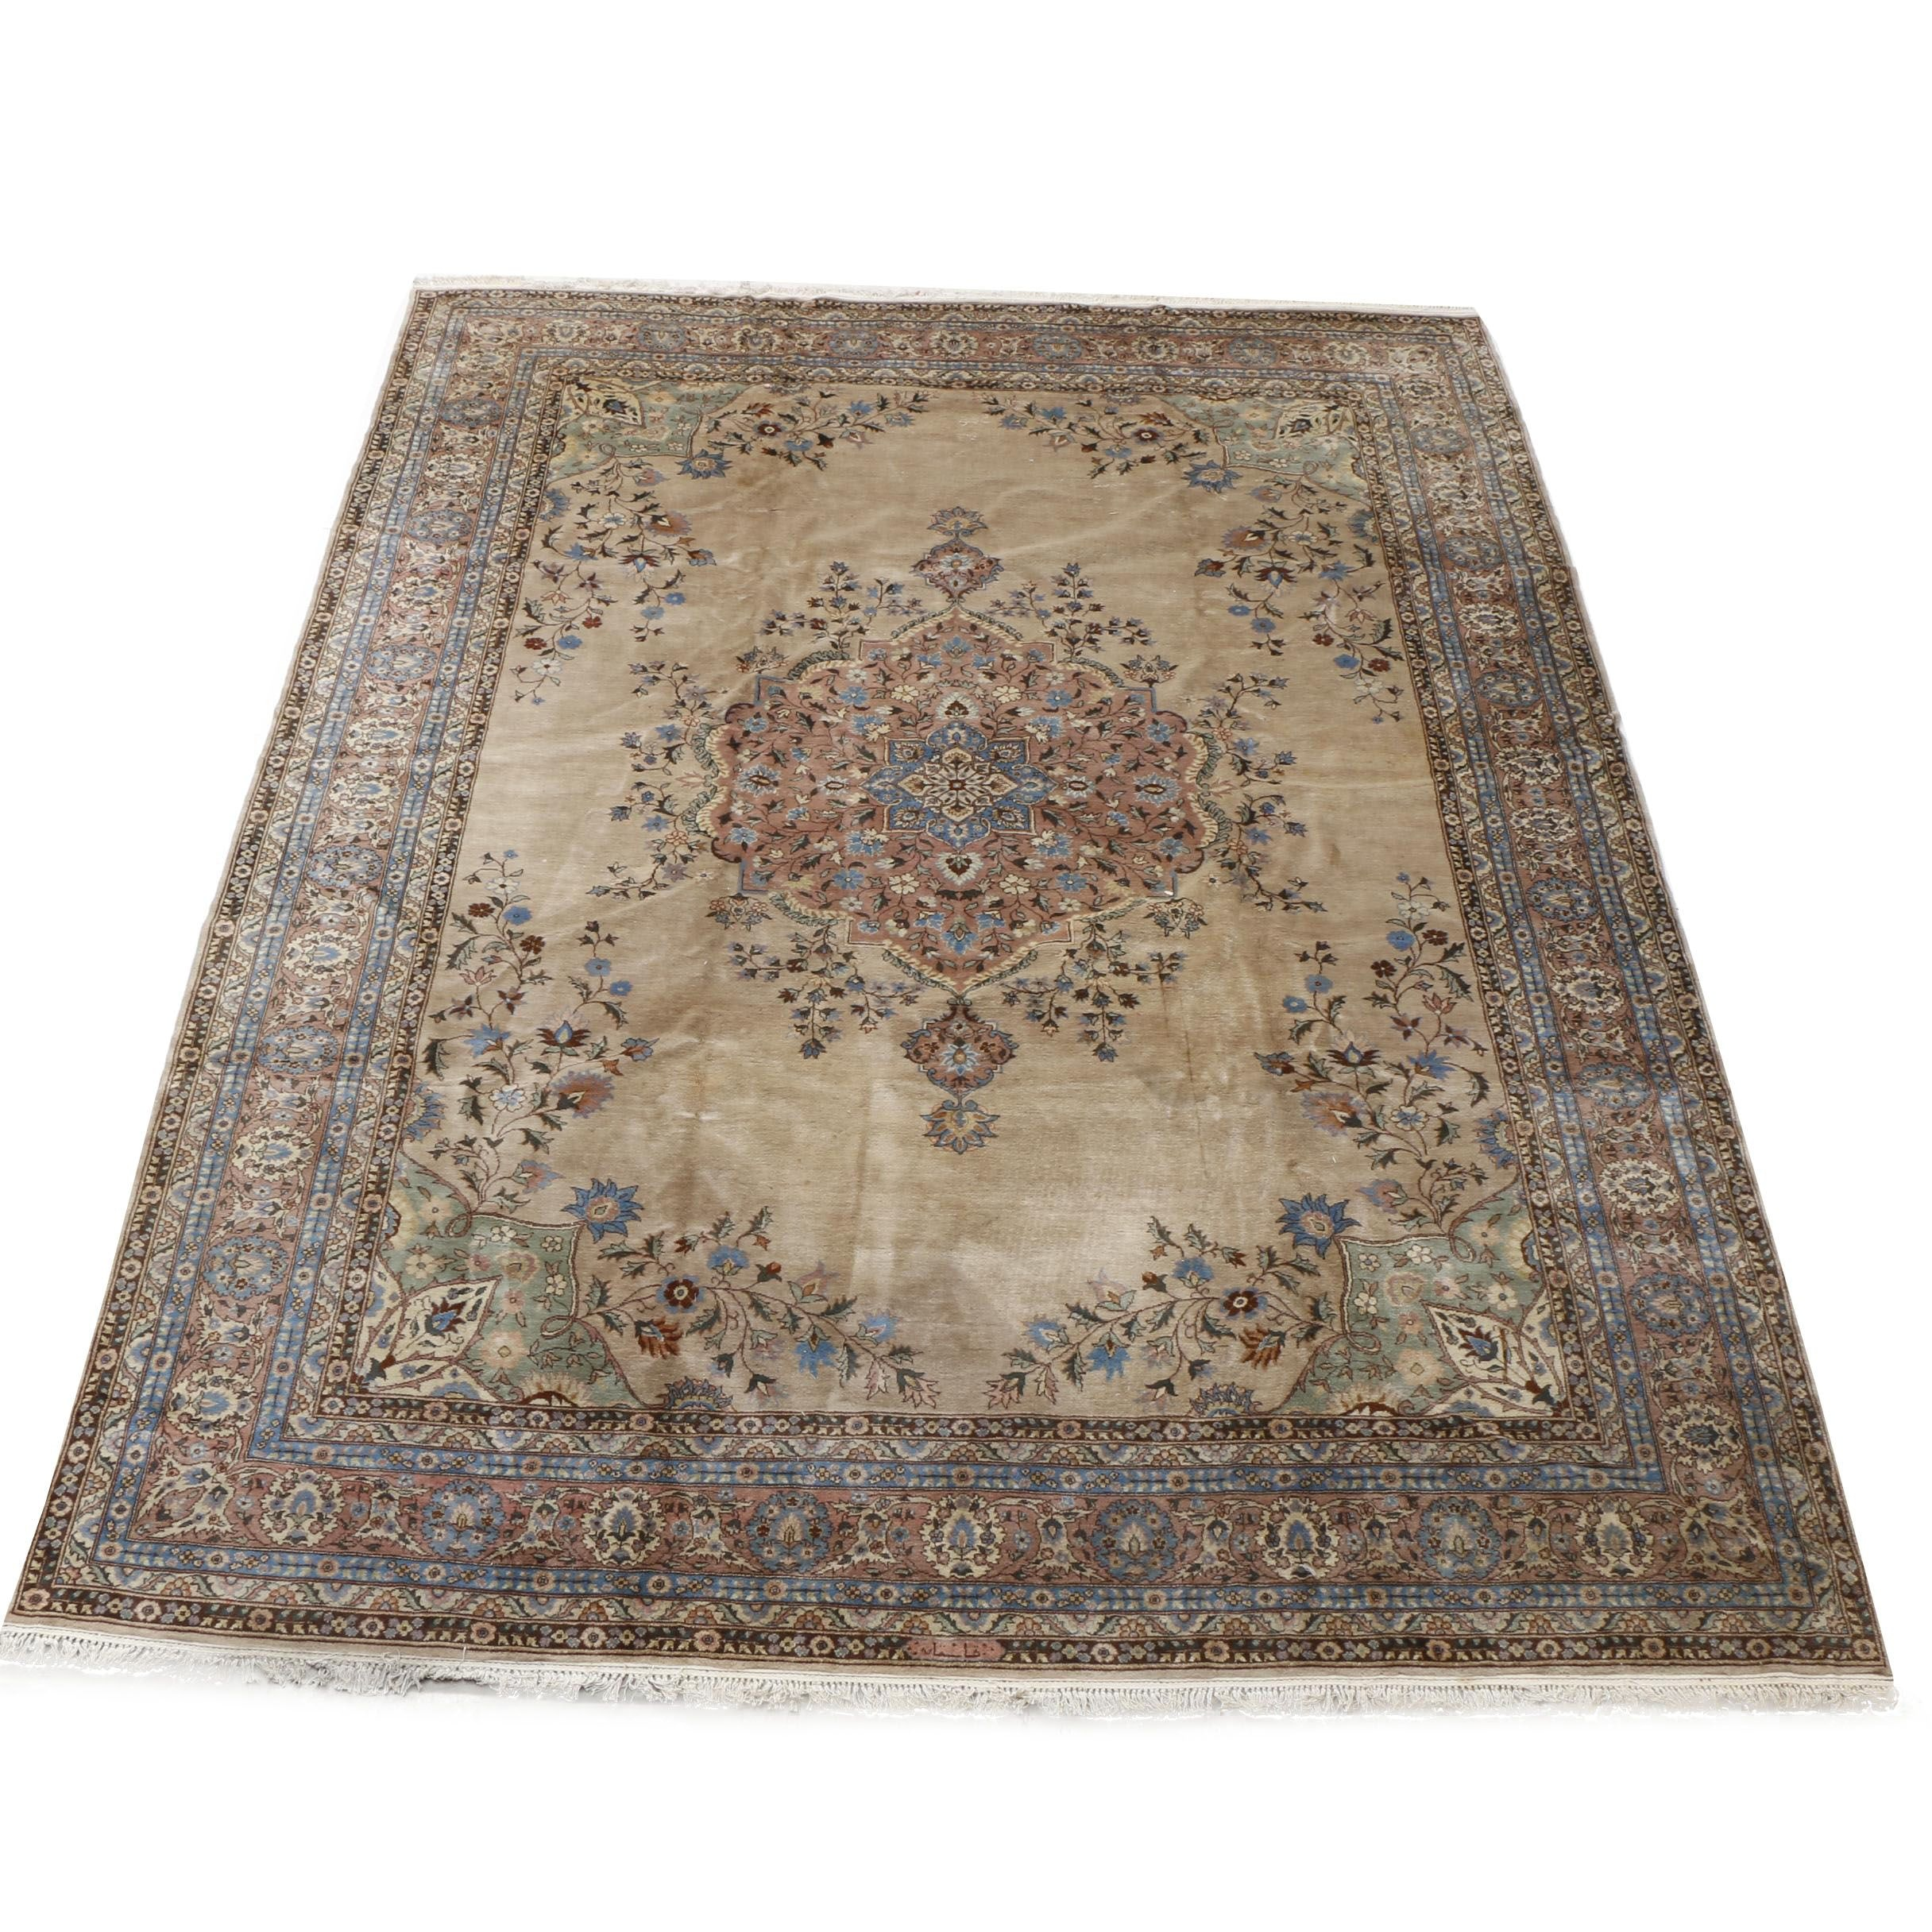 Signed Hand-Knotted Indo-Persian Room-Size Rug